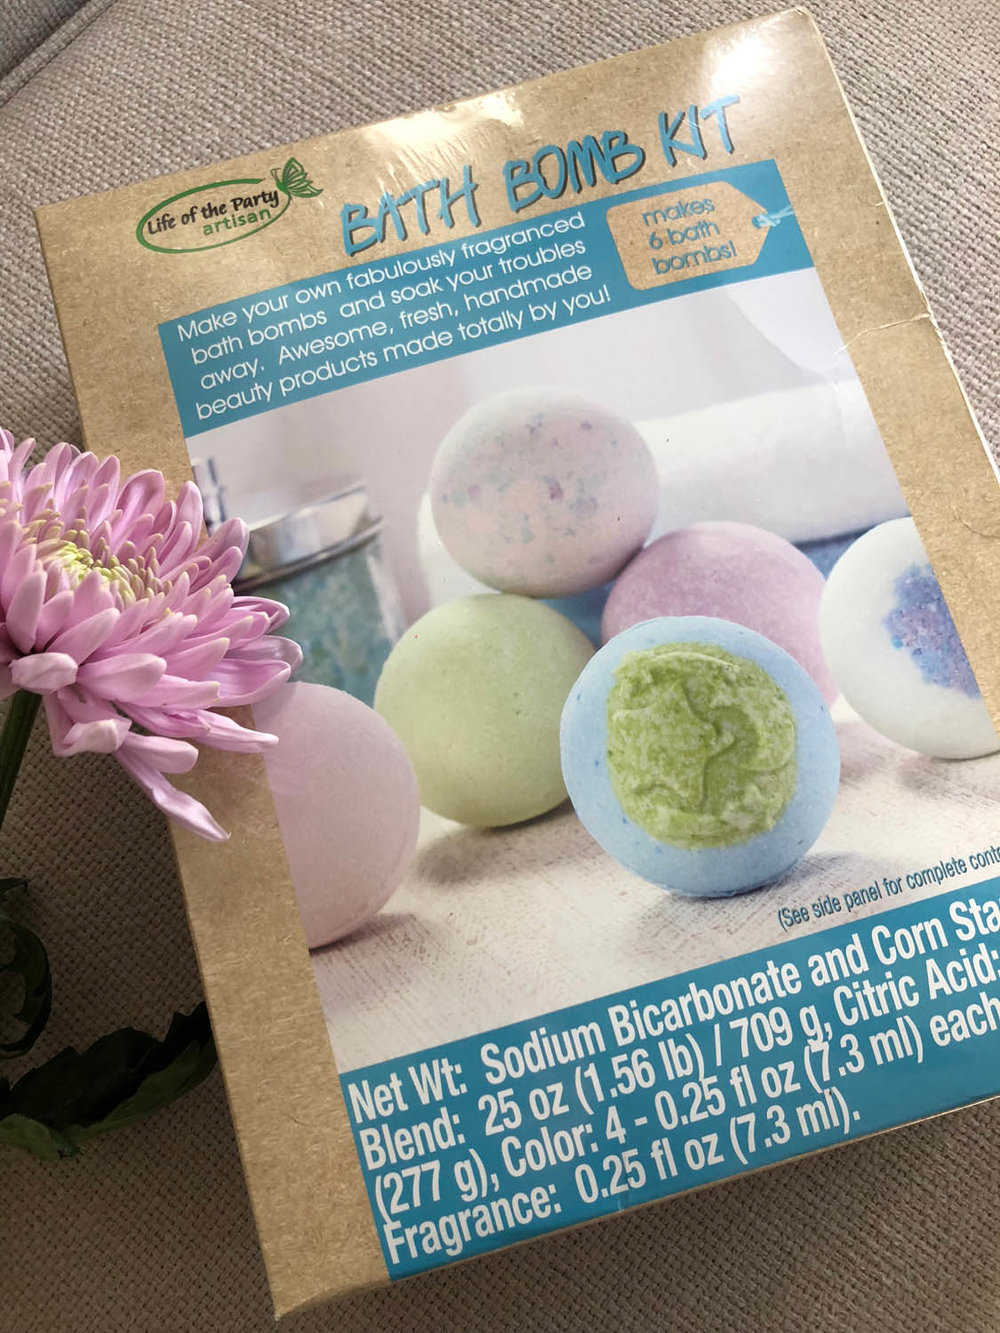 Life of the Party Bath Bomb Kit